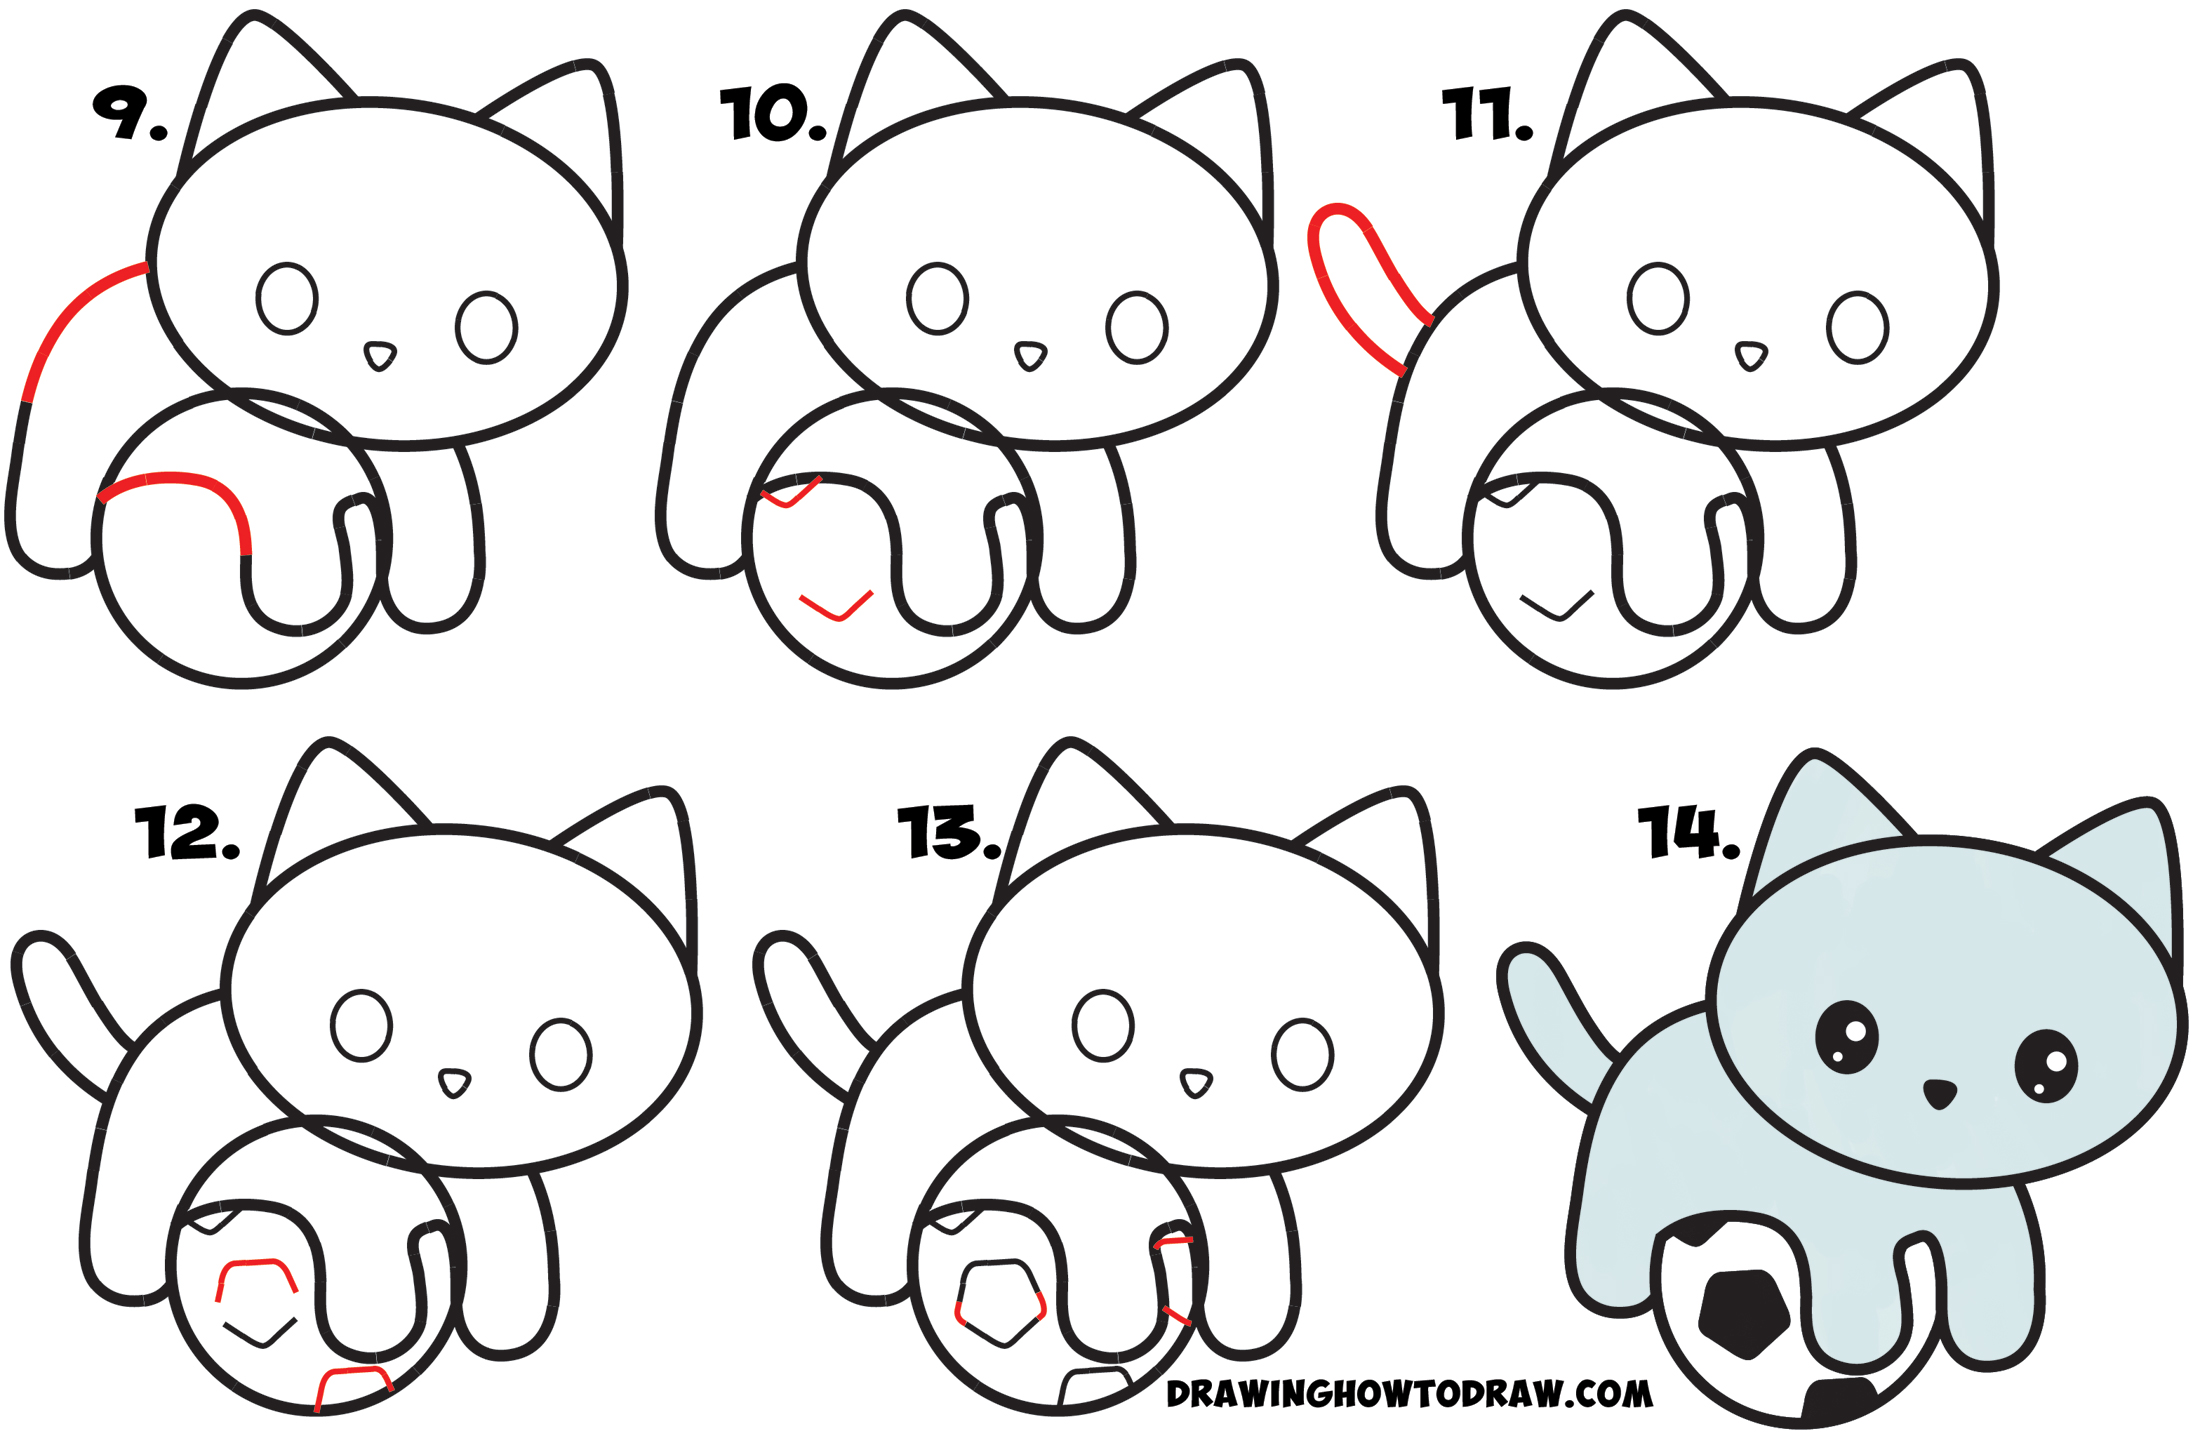 How To Draw A Cute Kitten Playing On A Soccer Ball Easy Step By Step